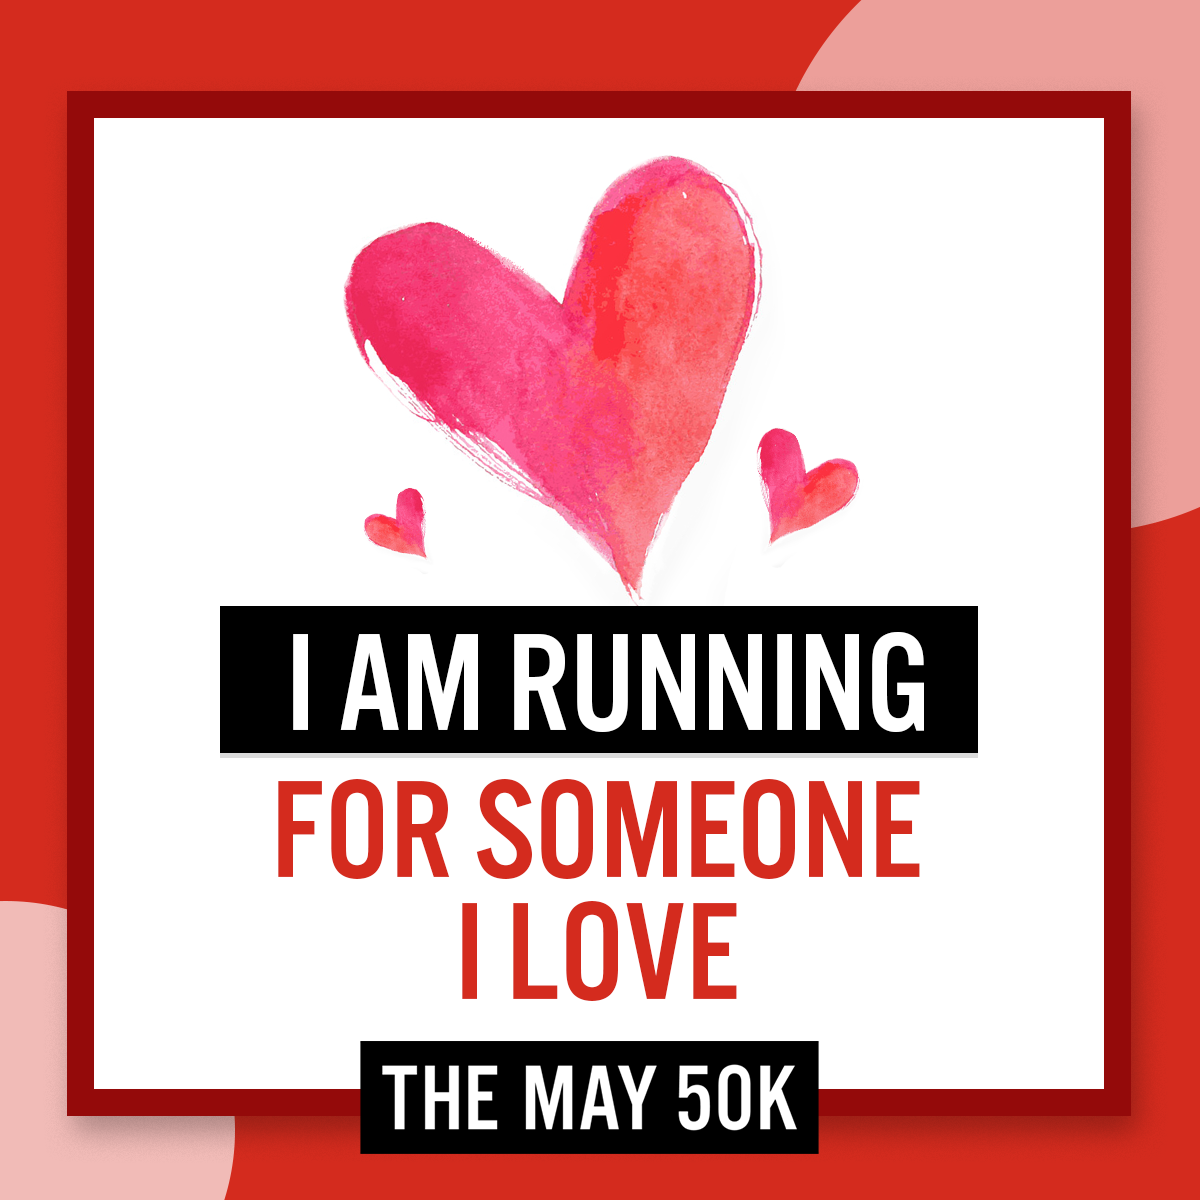 Social Posts - Run For Someone Love